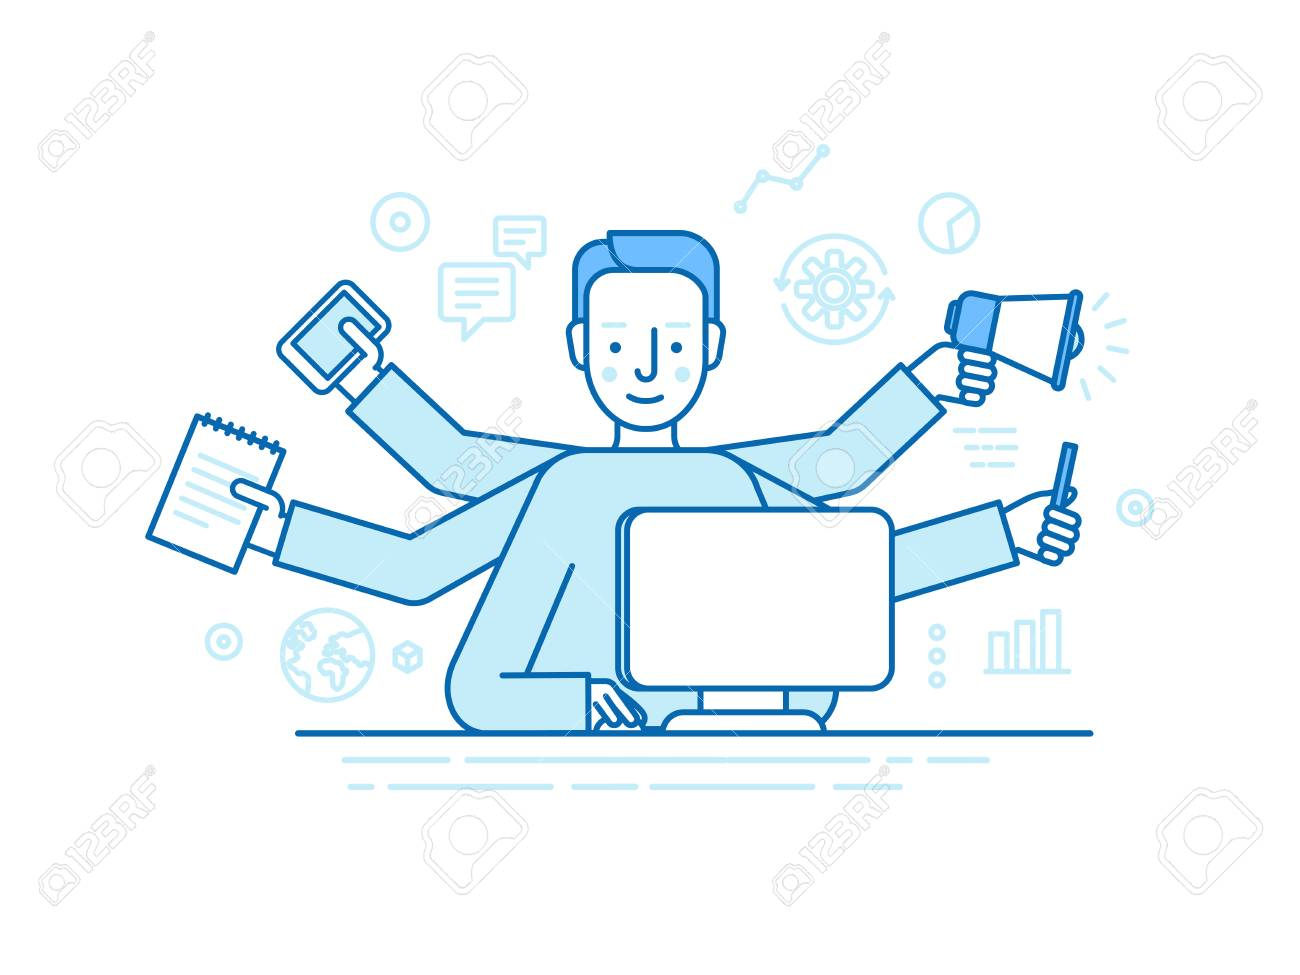 home office multitasking. Home Office Multitasking. Vector Self Employment Concept In Trendy Flat Linear Style - Multitasking Freelancer